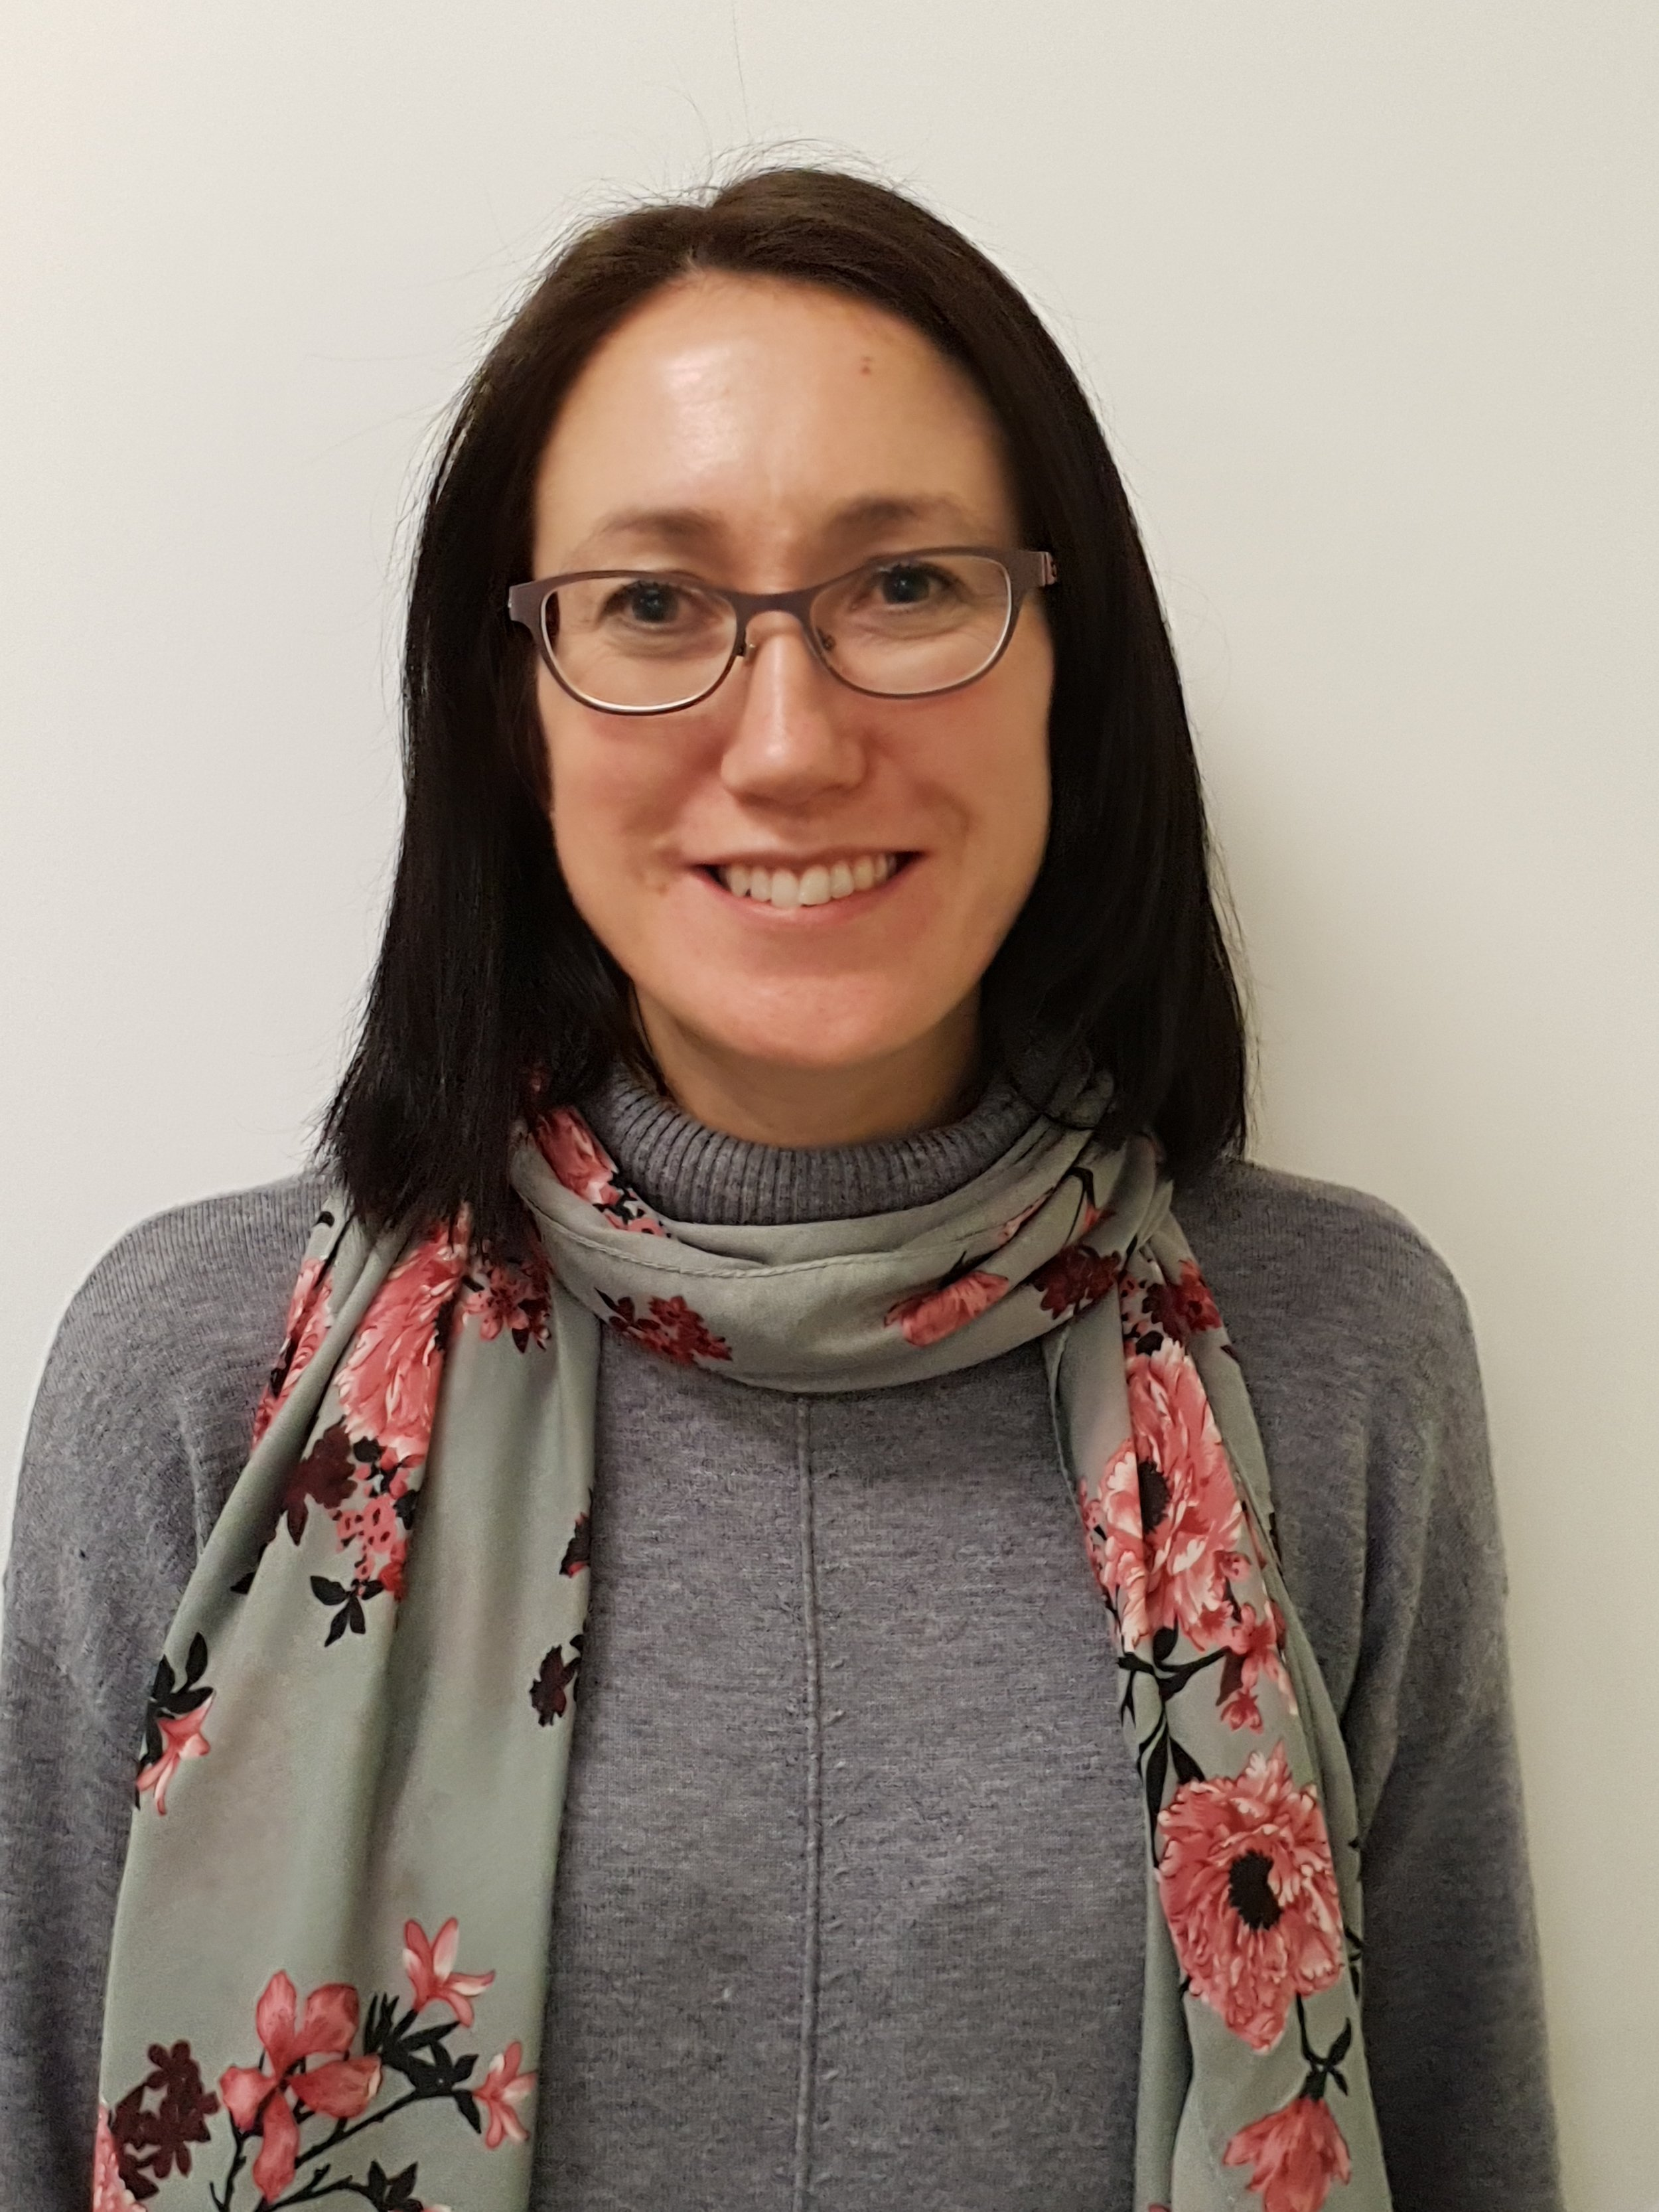 Jenny Blackmore, QVTI Neath Port Talbot. - Jenny is a qualified teacher of who specialises in educatingchildren and young people with sight loss: